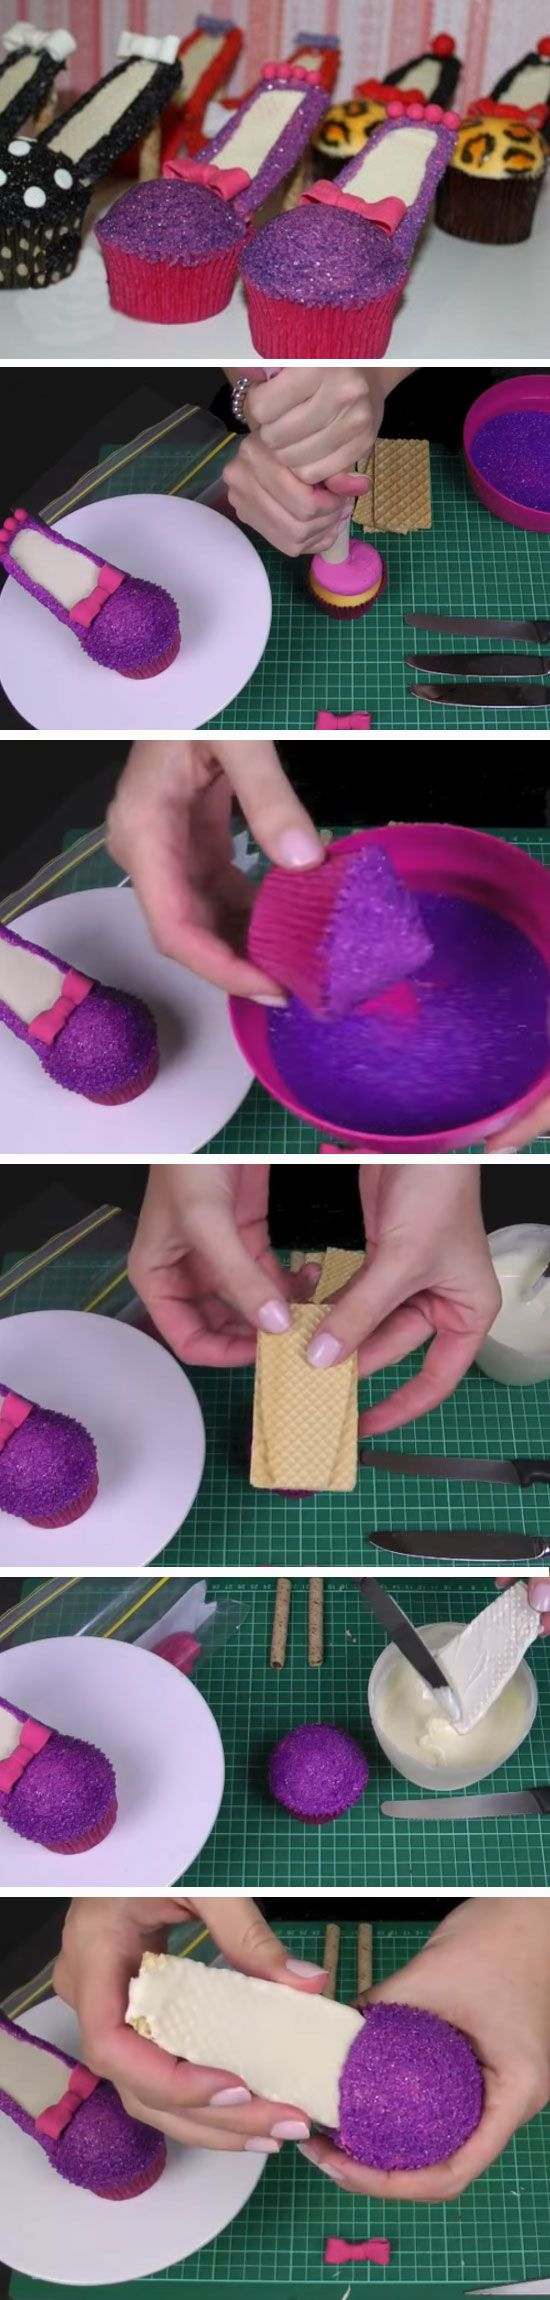 Stiletto Cupcakes   DIY Mothers Day Cupcakes Ideas for Kids to Make